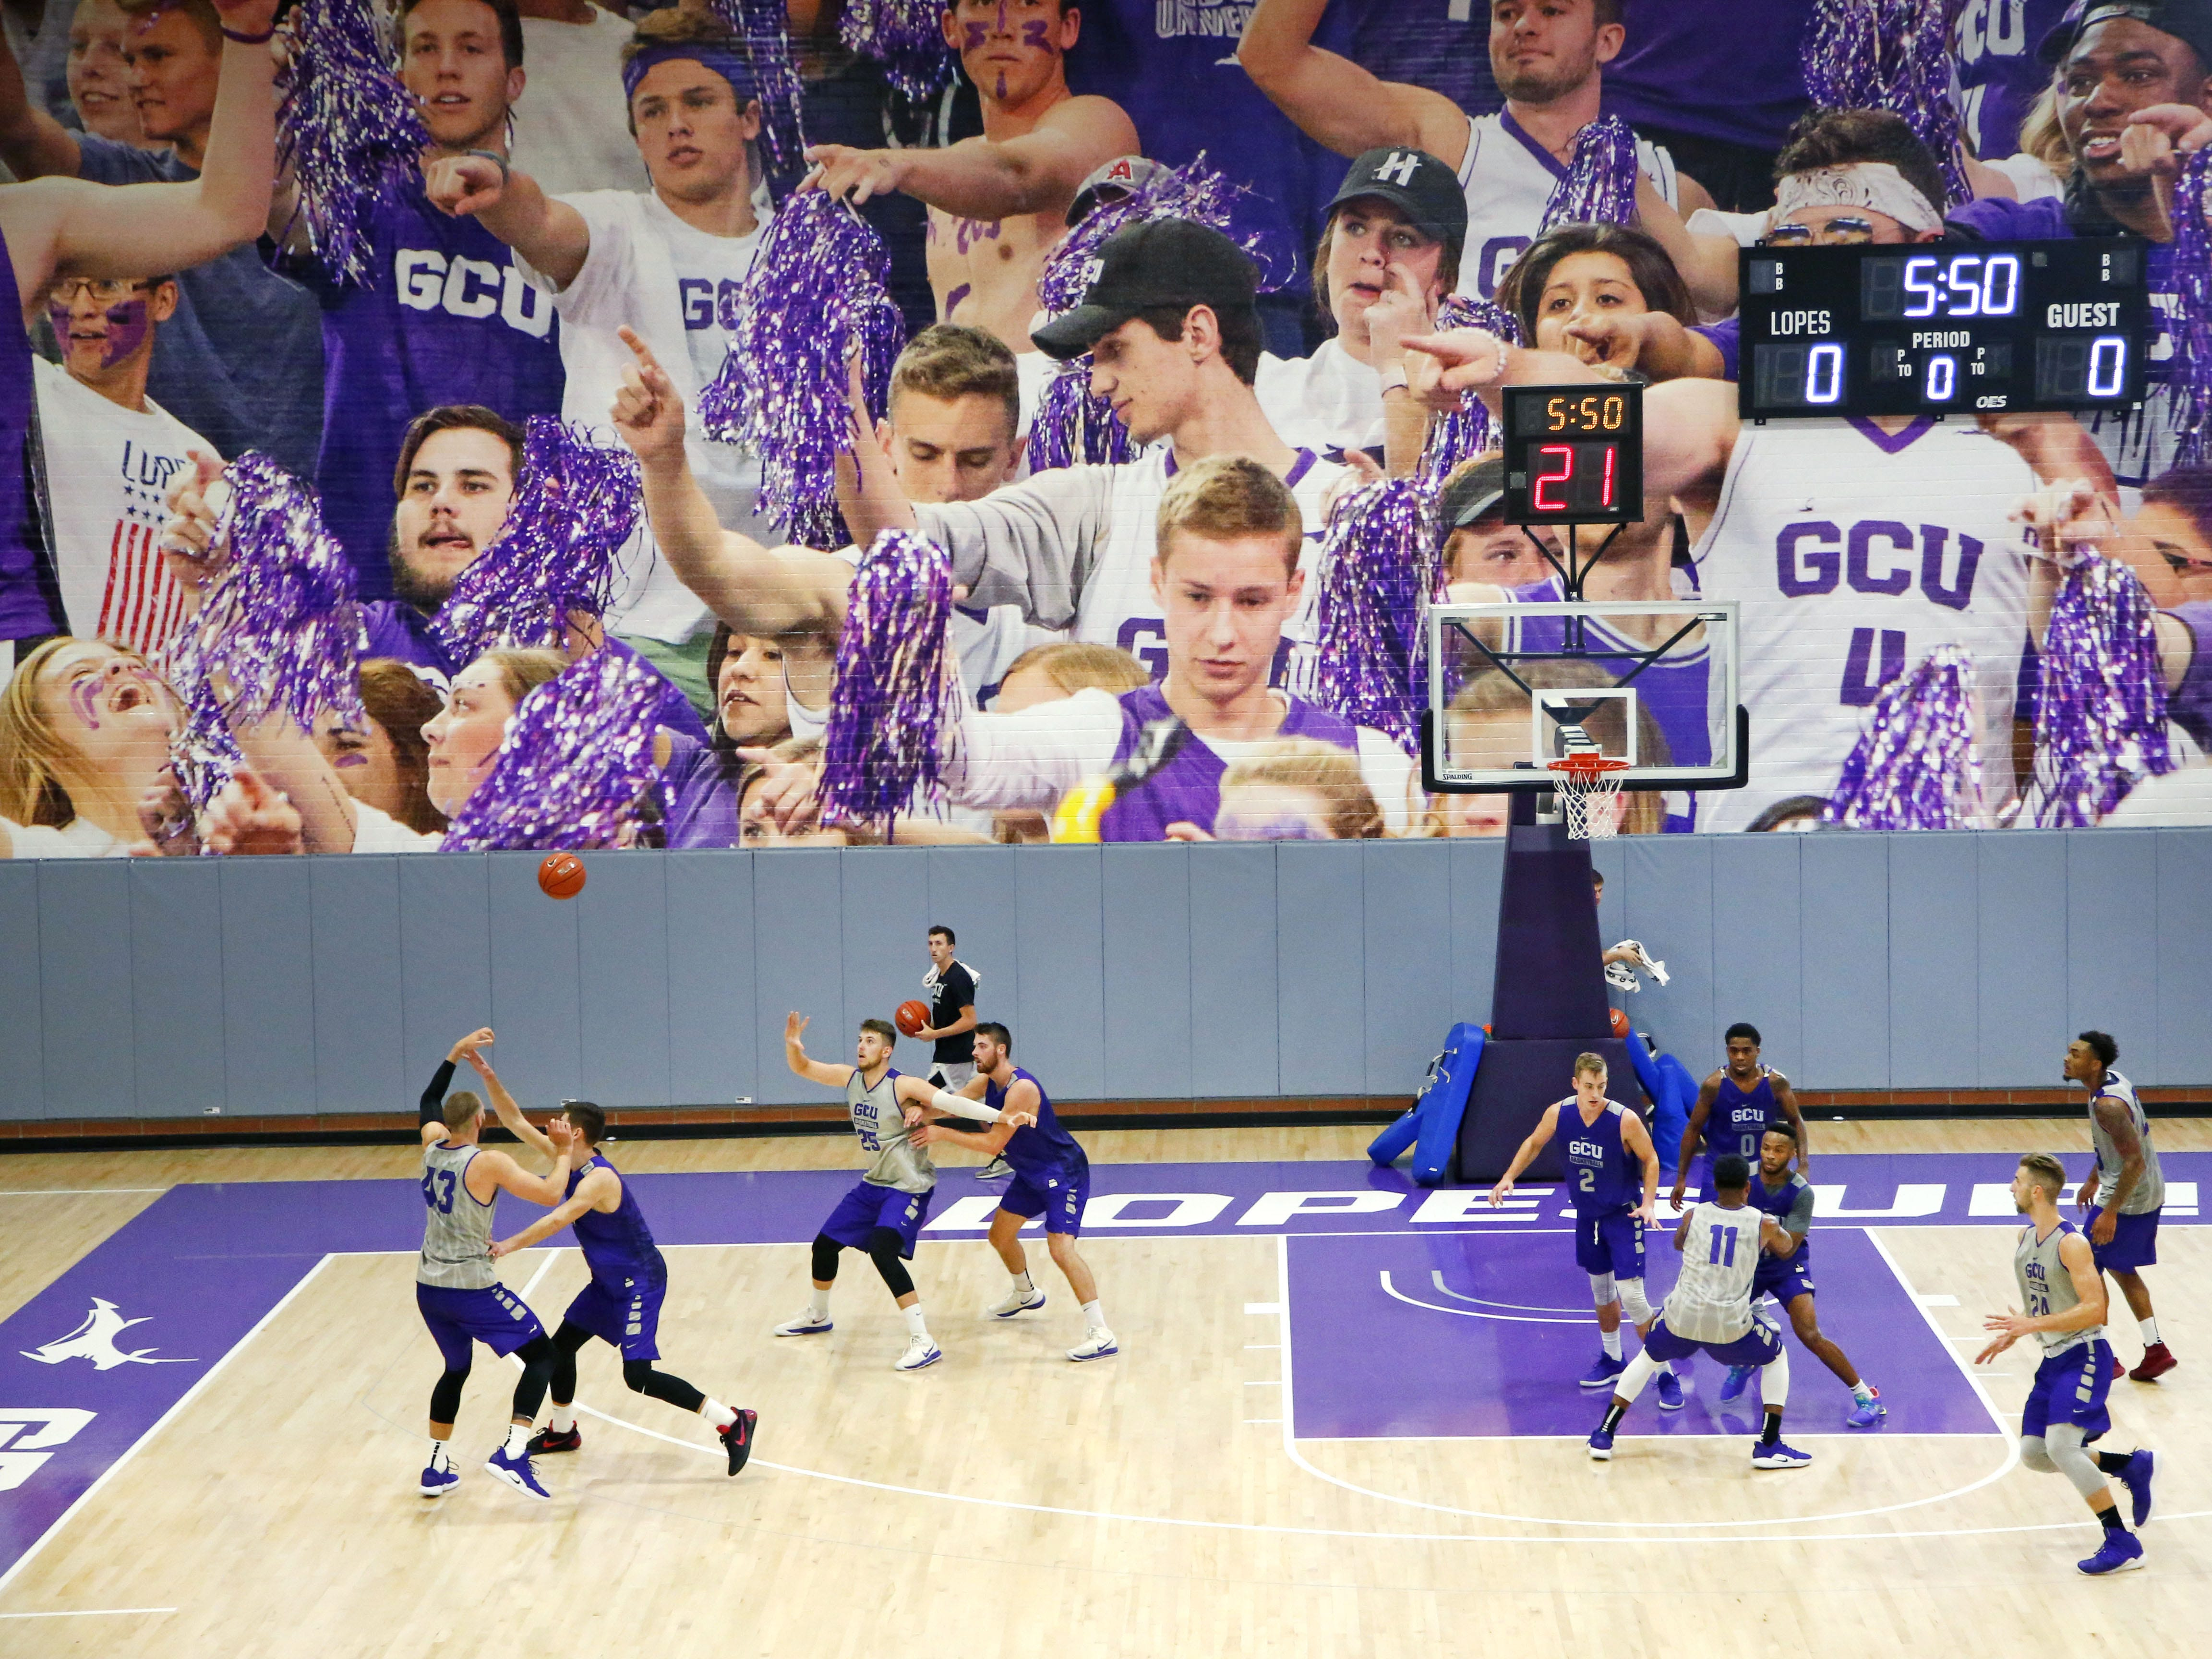 Grand Canyon University's basketball team practices in the gym in Phoenix on September 26,  2018.